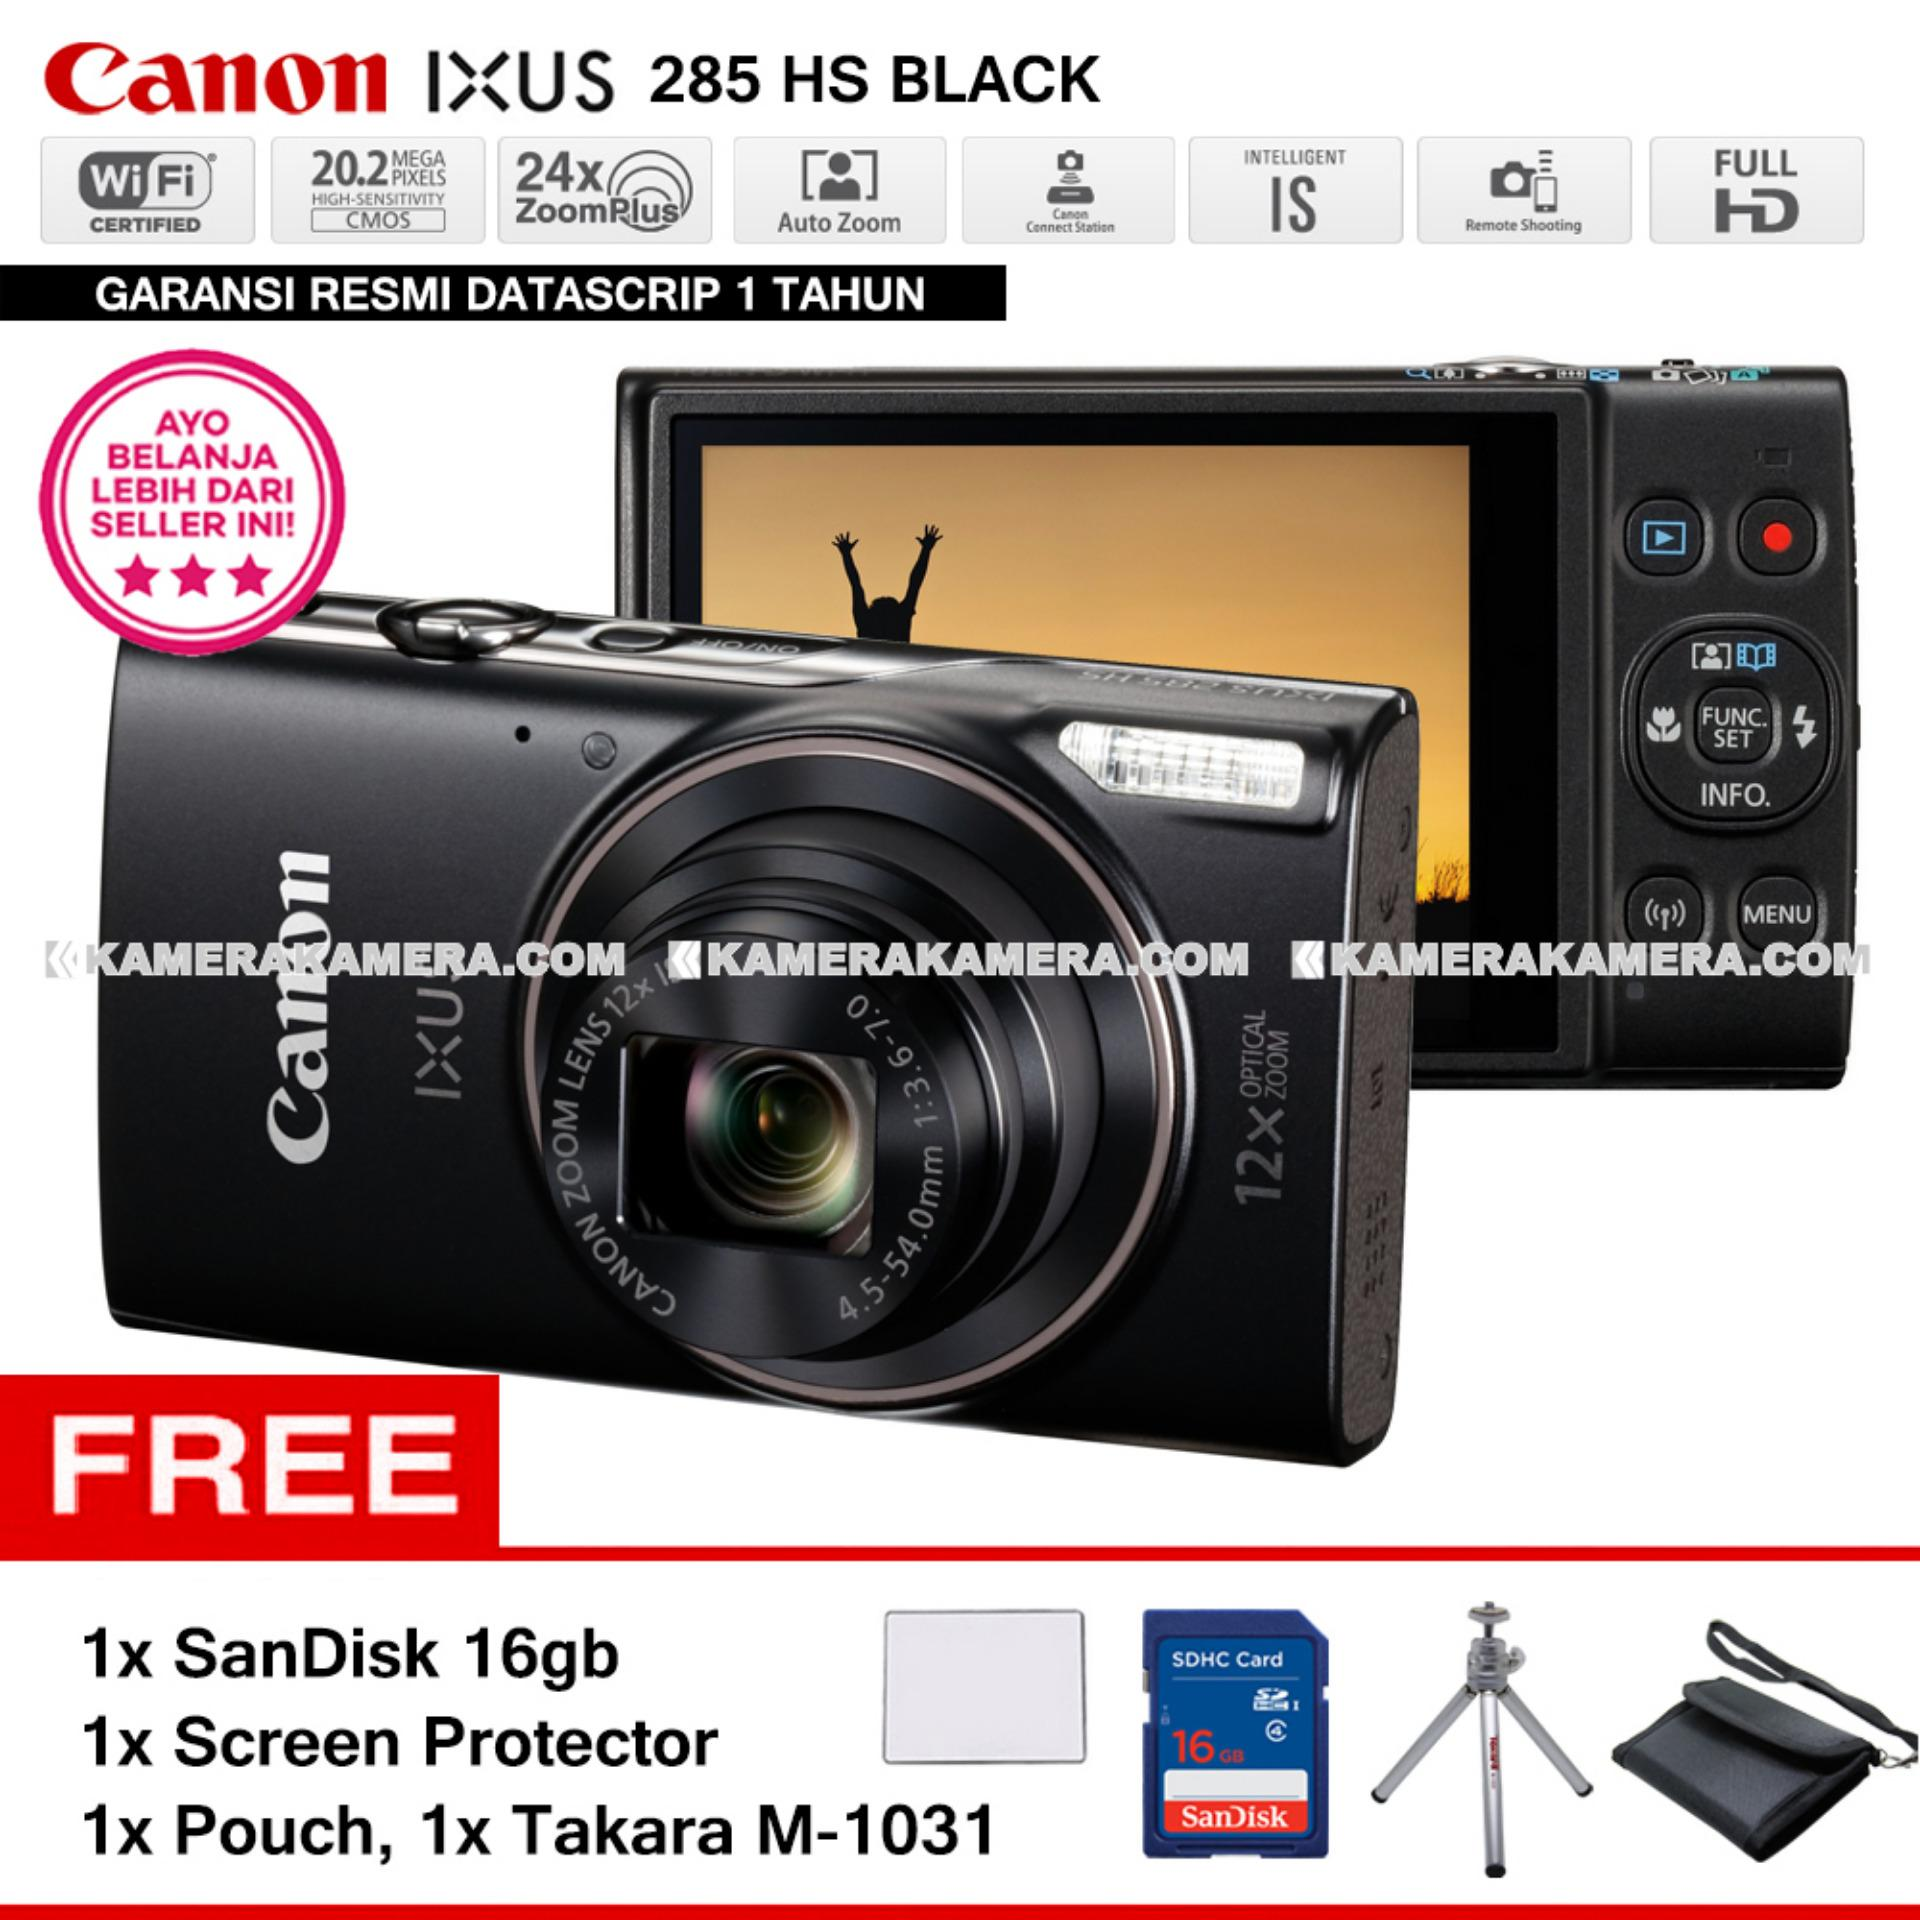 Harga Canon Ixus 285 Hs Black Wifi 20 2Mp Full Hd Pocket Camera Resmi Datascrip Sandisk 8Gb Screen Protector Pocket Case Takara M 1031 Canon Baru